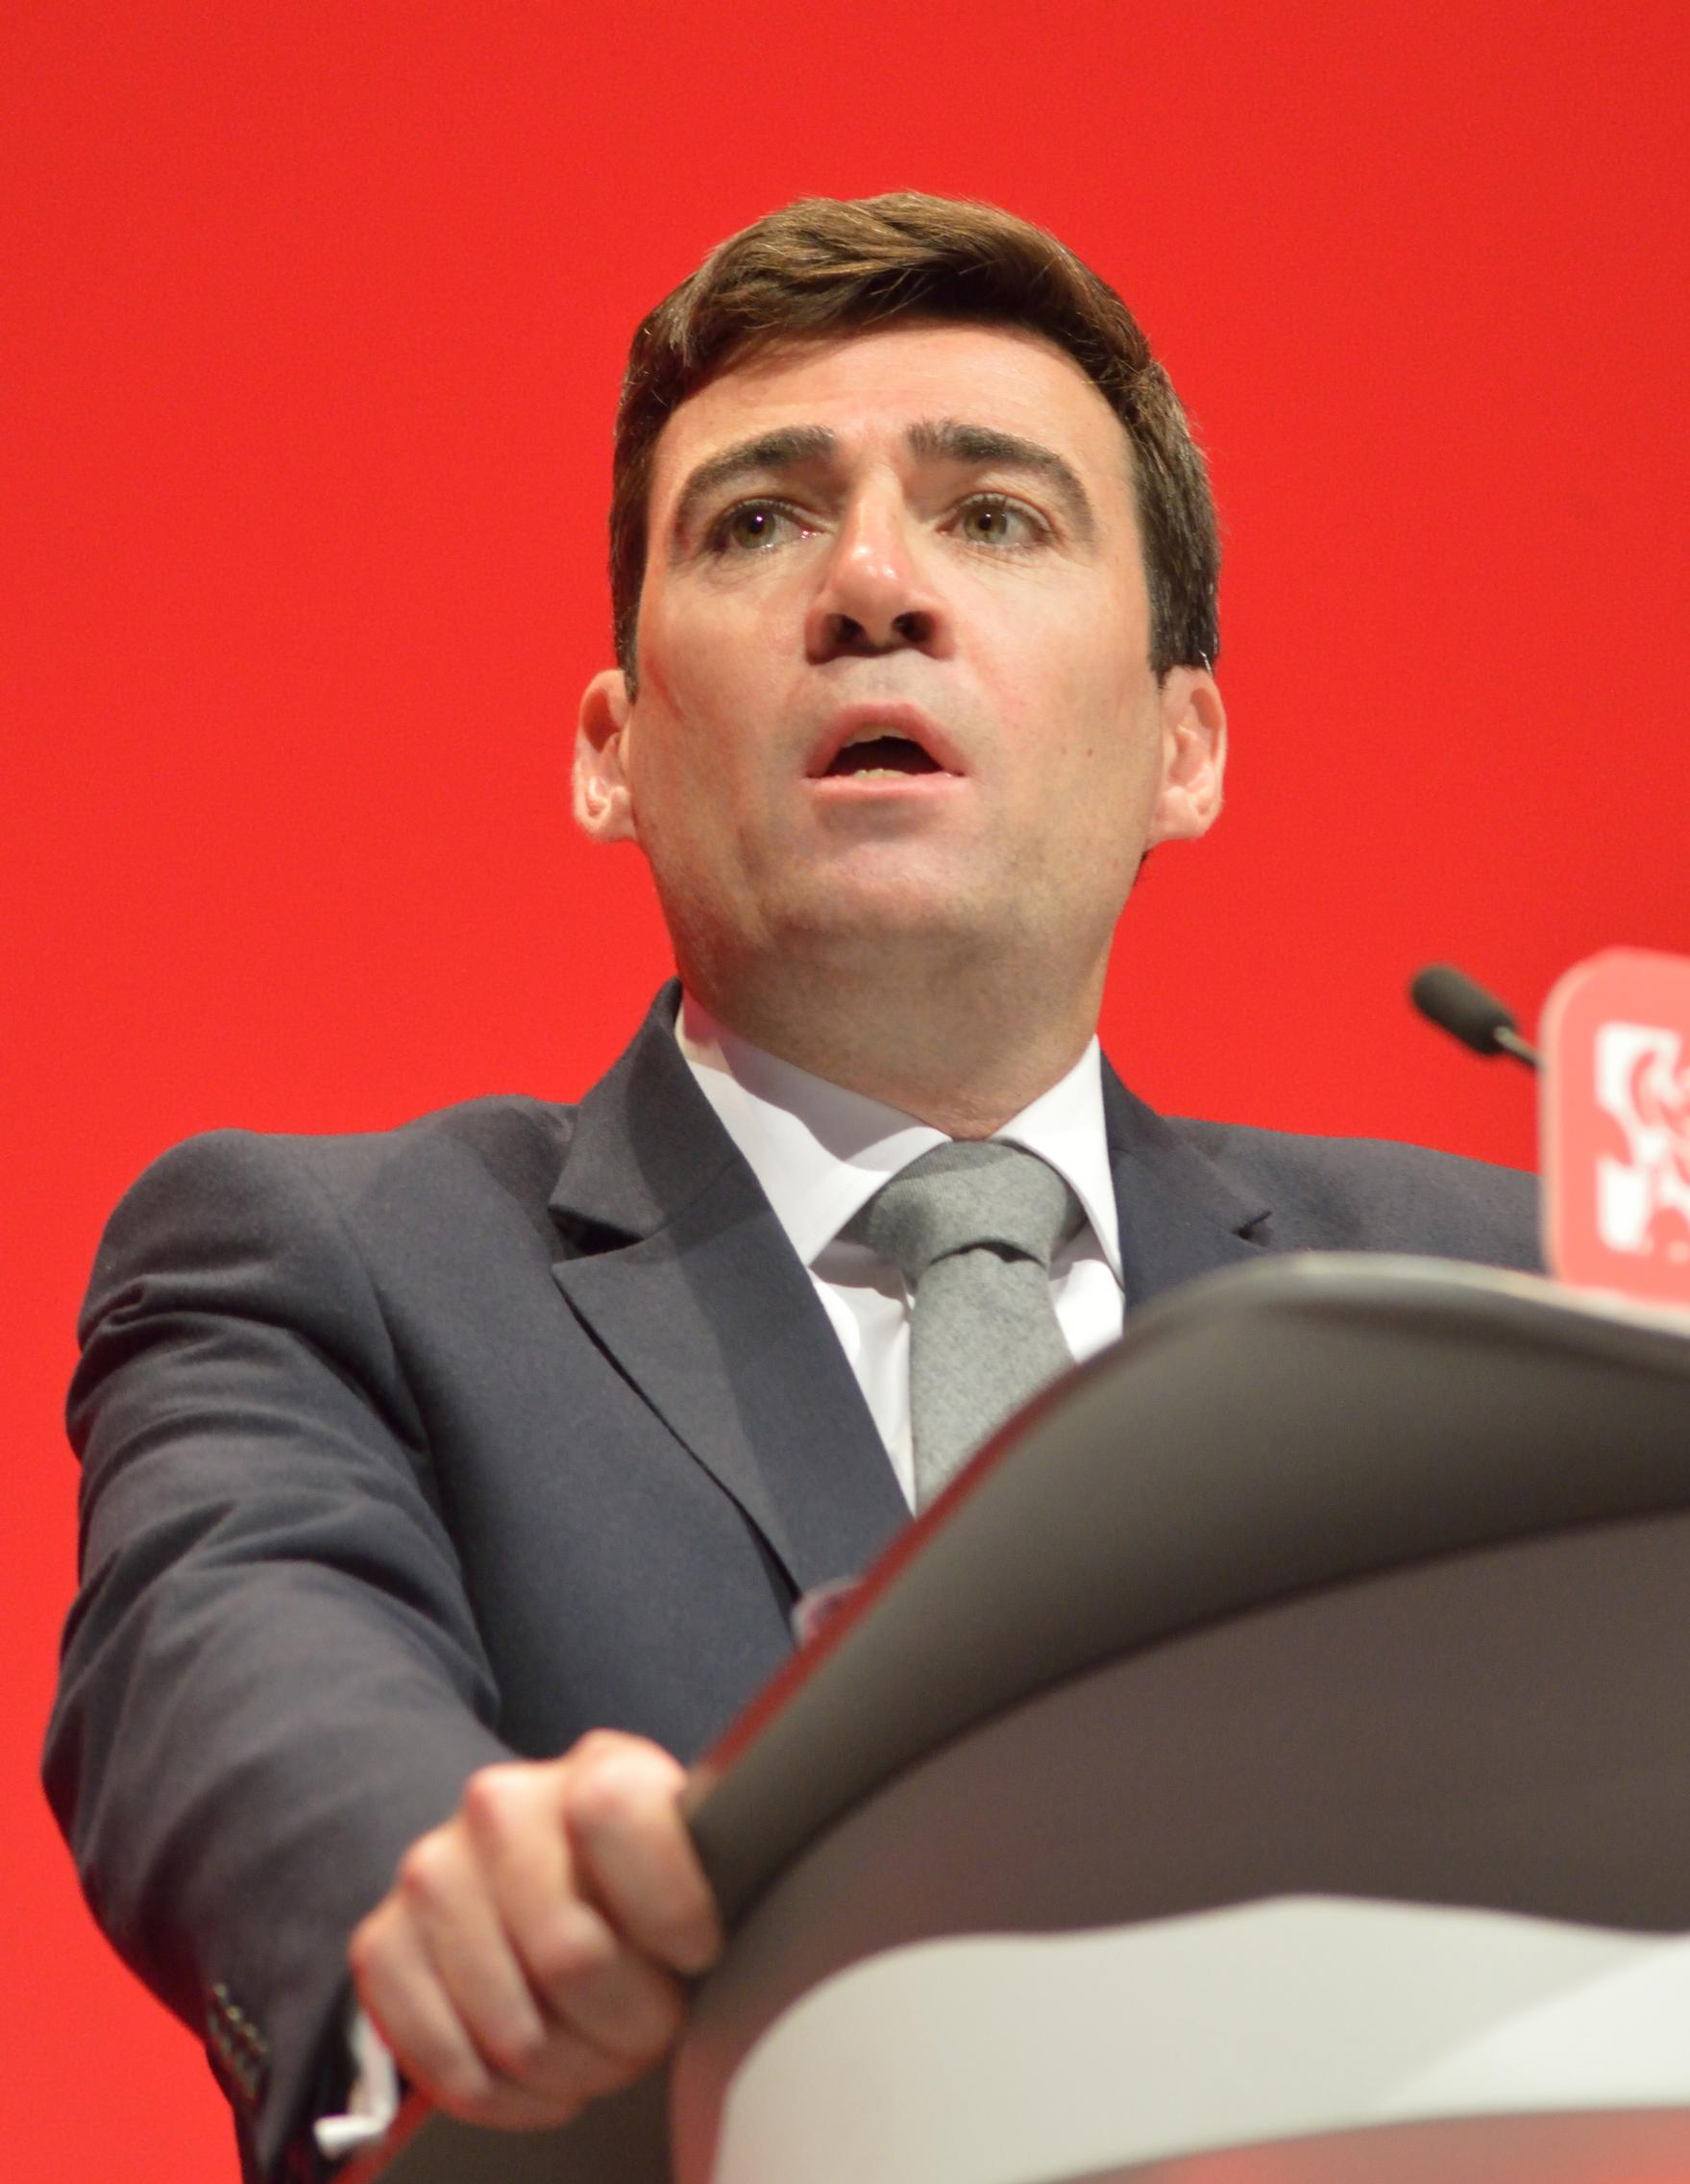 Greater Manchester Mayor, Andy Burnham